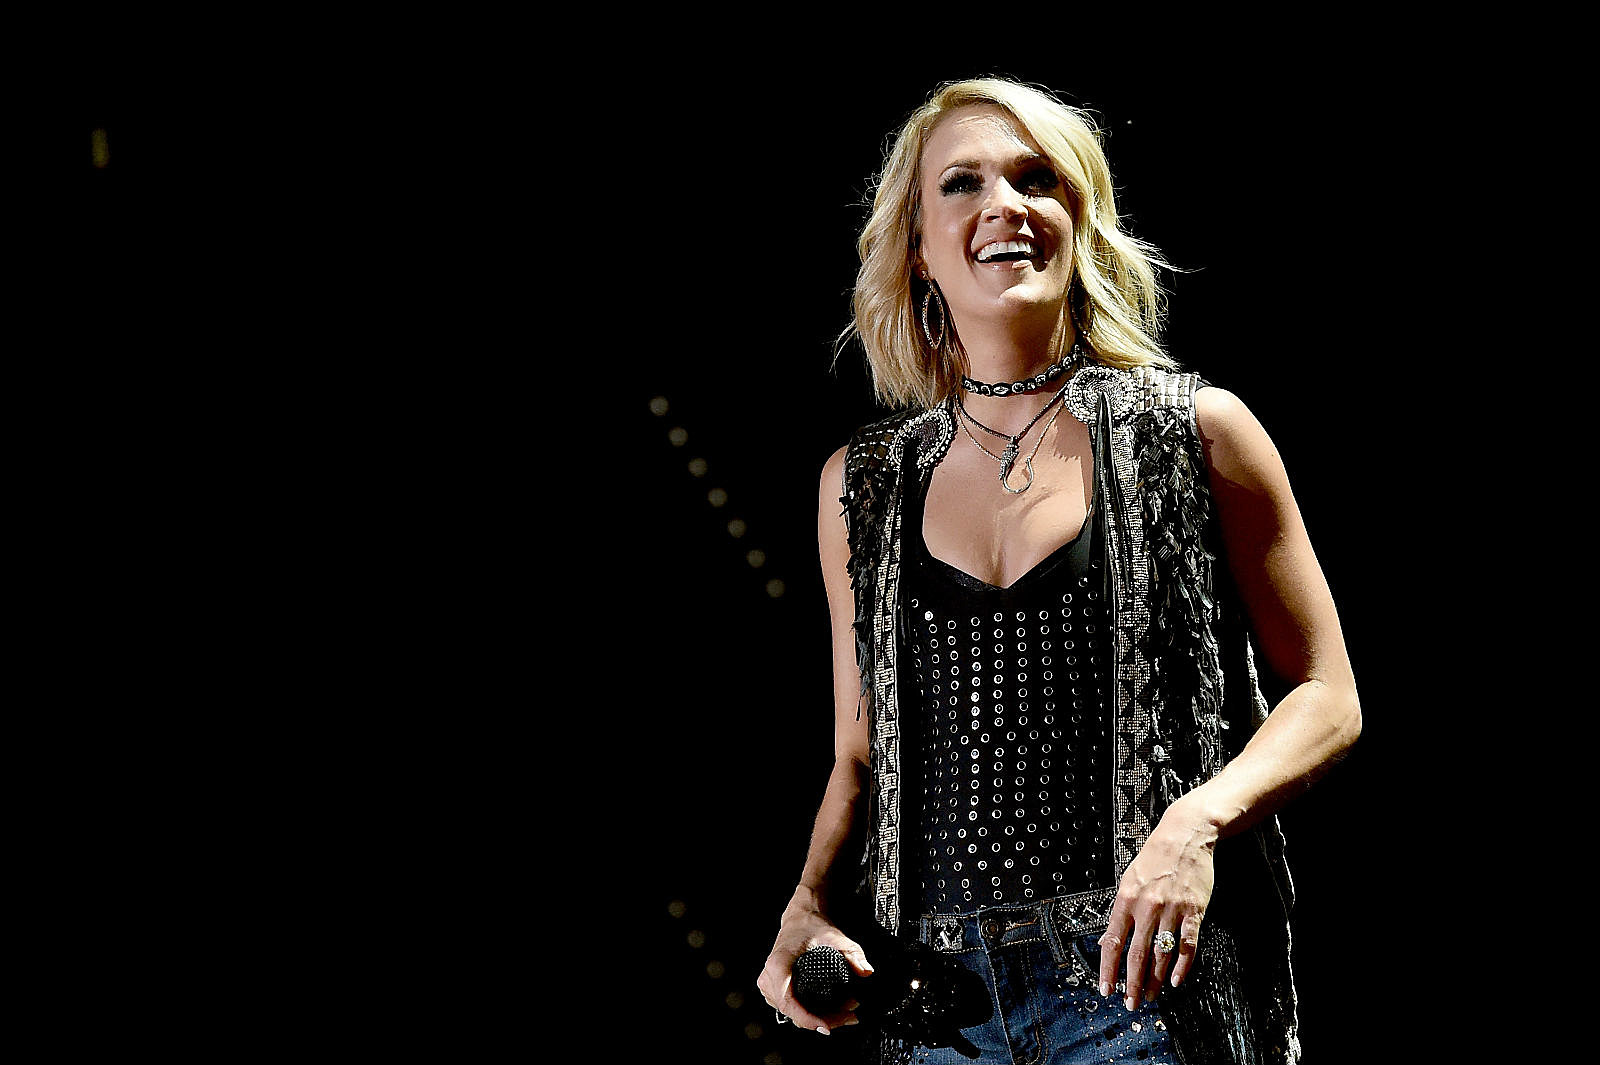 carrie-underwood-sorority1.jpg